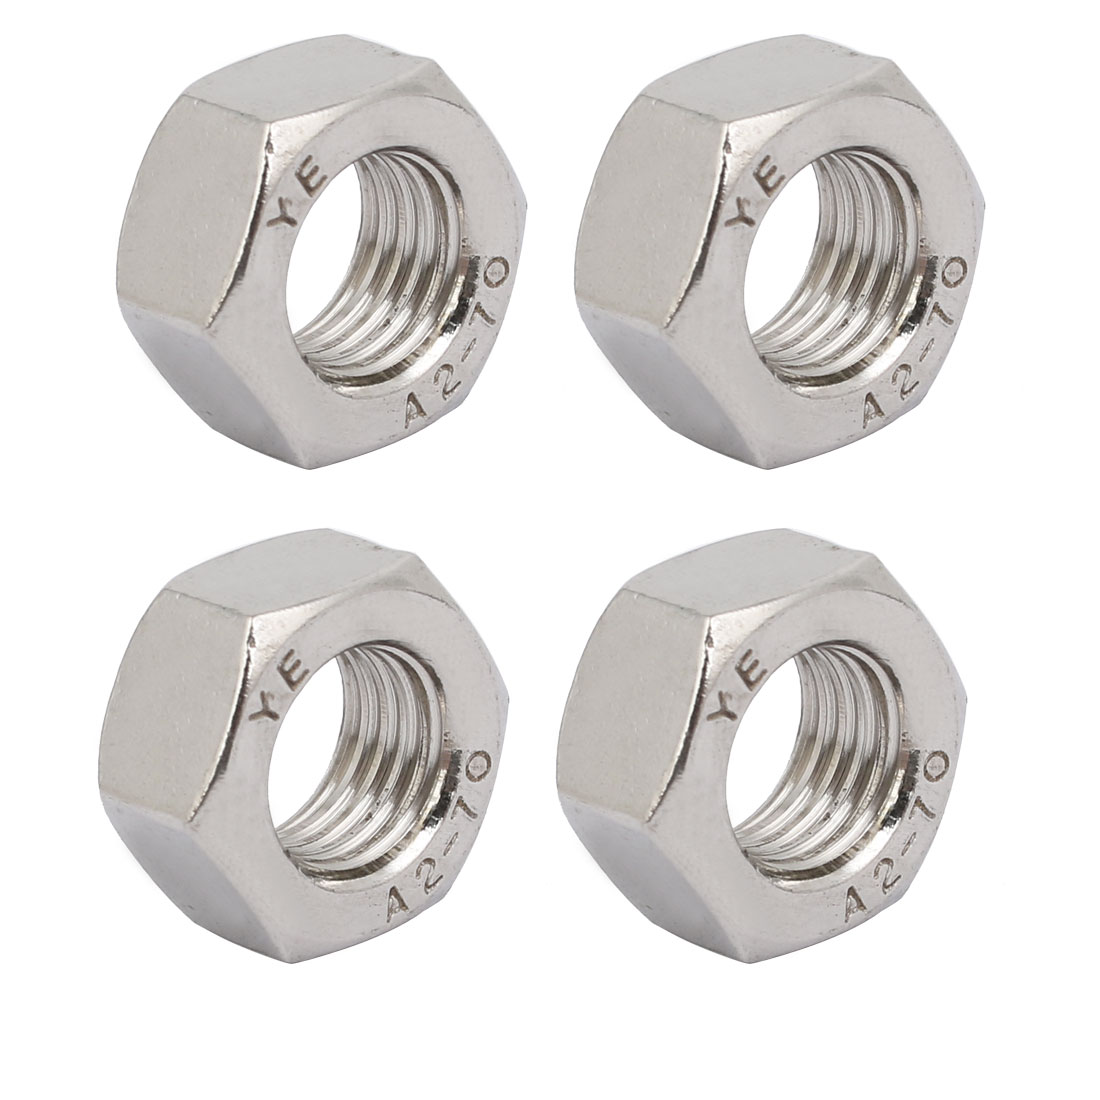 4pcs M12 x 1.5mm Pitch Metric Fine Thread 304 Stainless Steel Hex Nuts